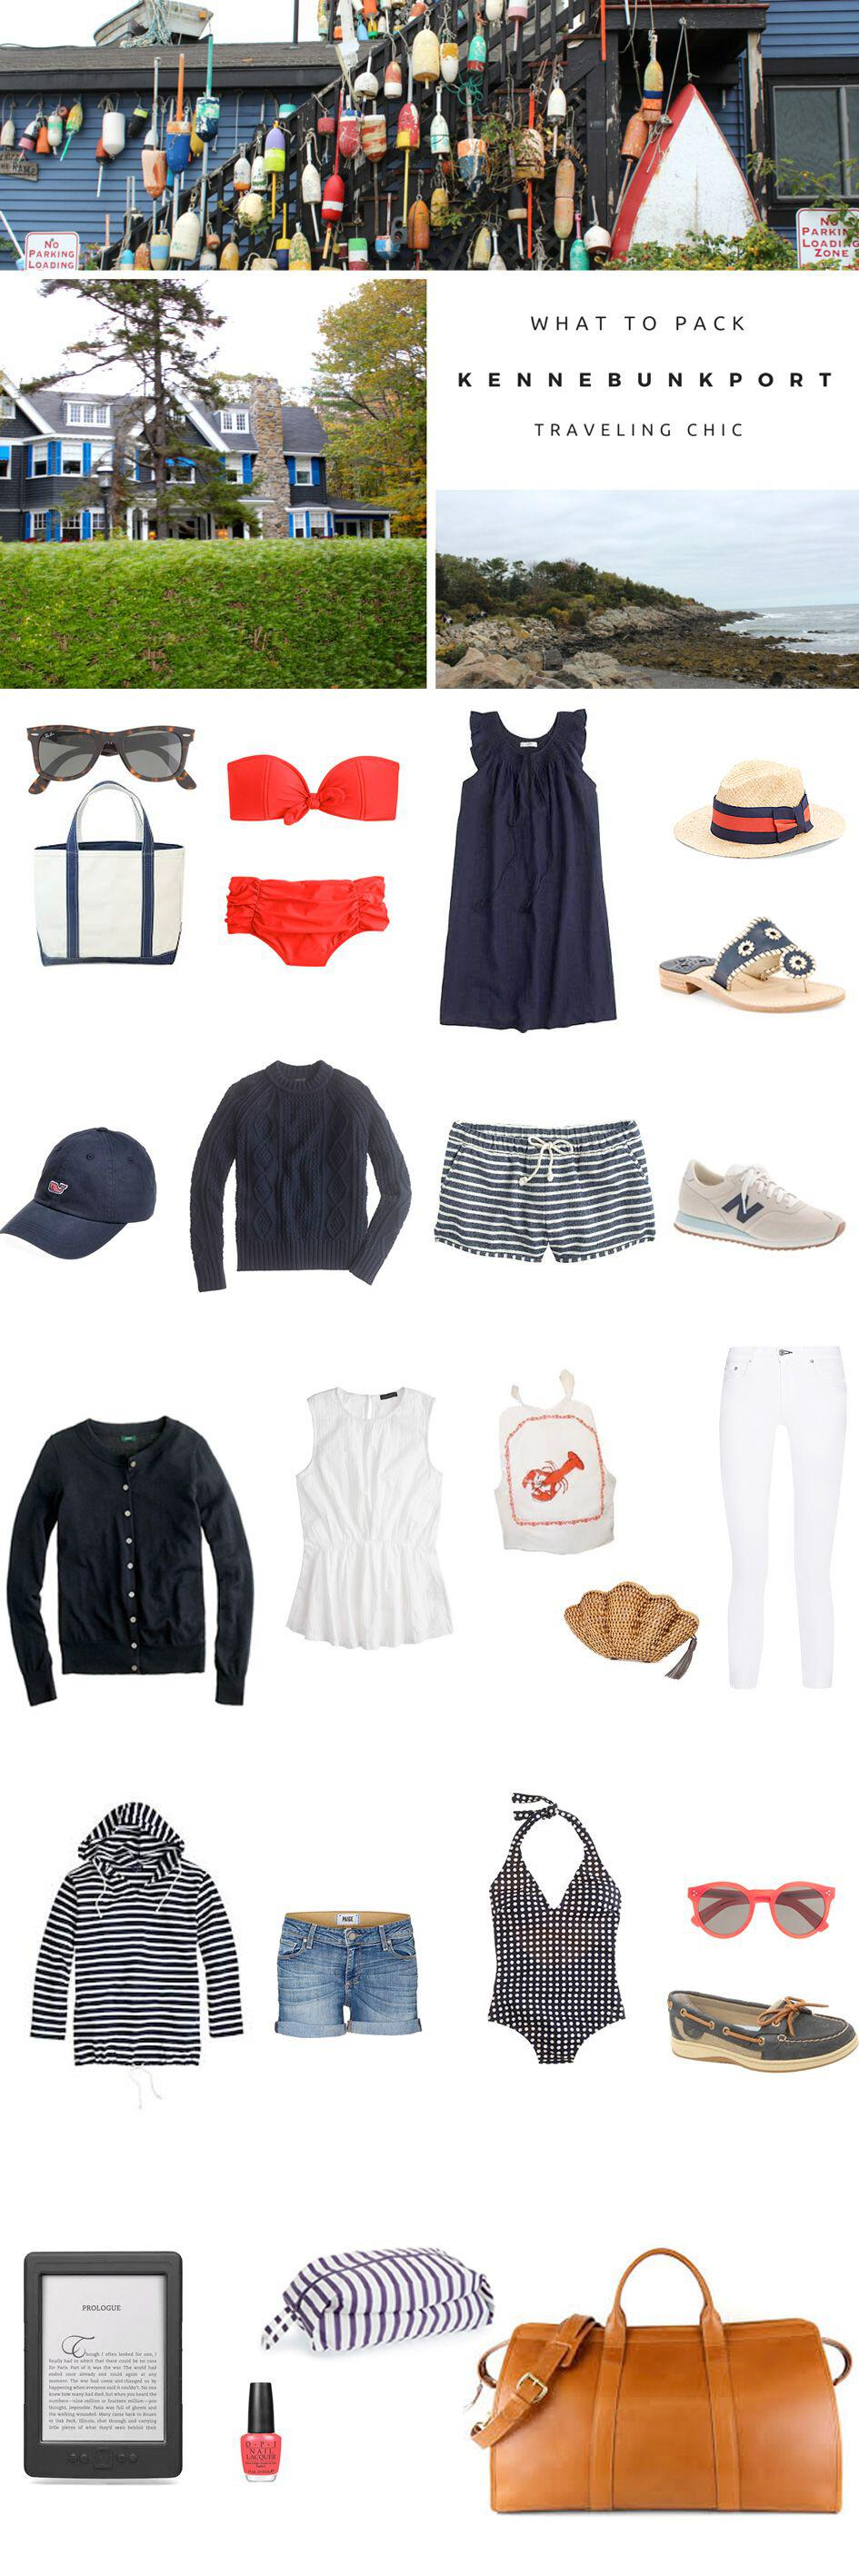 what to pack for a weekend at the beach 2 - What to pack for a weekend at the beach